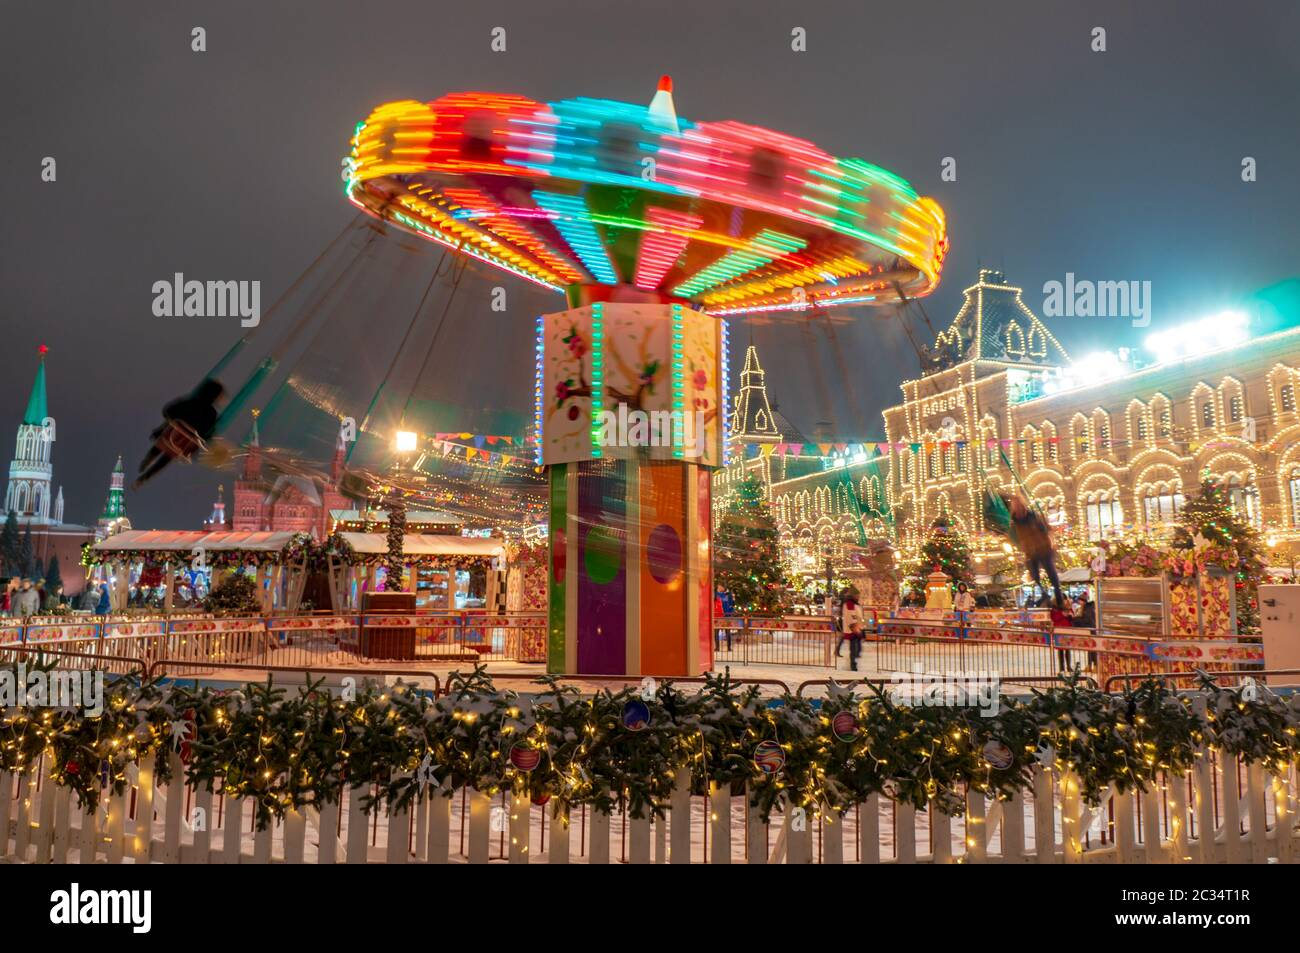 Christmas Carousel Recreation 2020 Moscow, Russia, 28 january 2020: Celebration carousel of the New